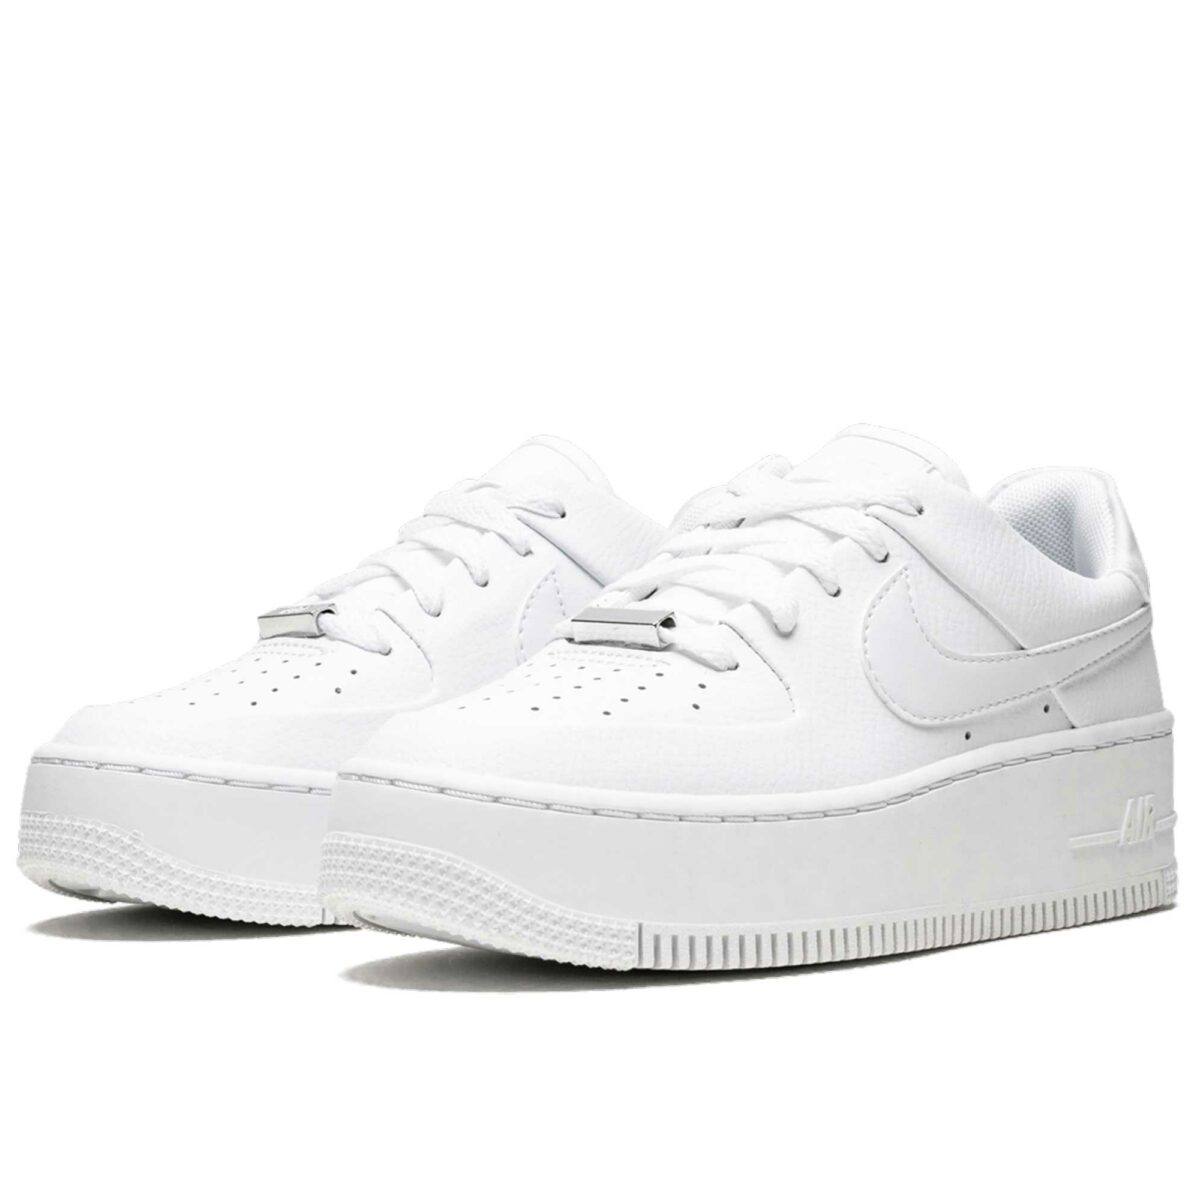 nike air force 1 sage low triple white AR5339_100 купить